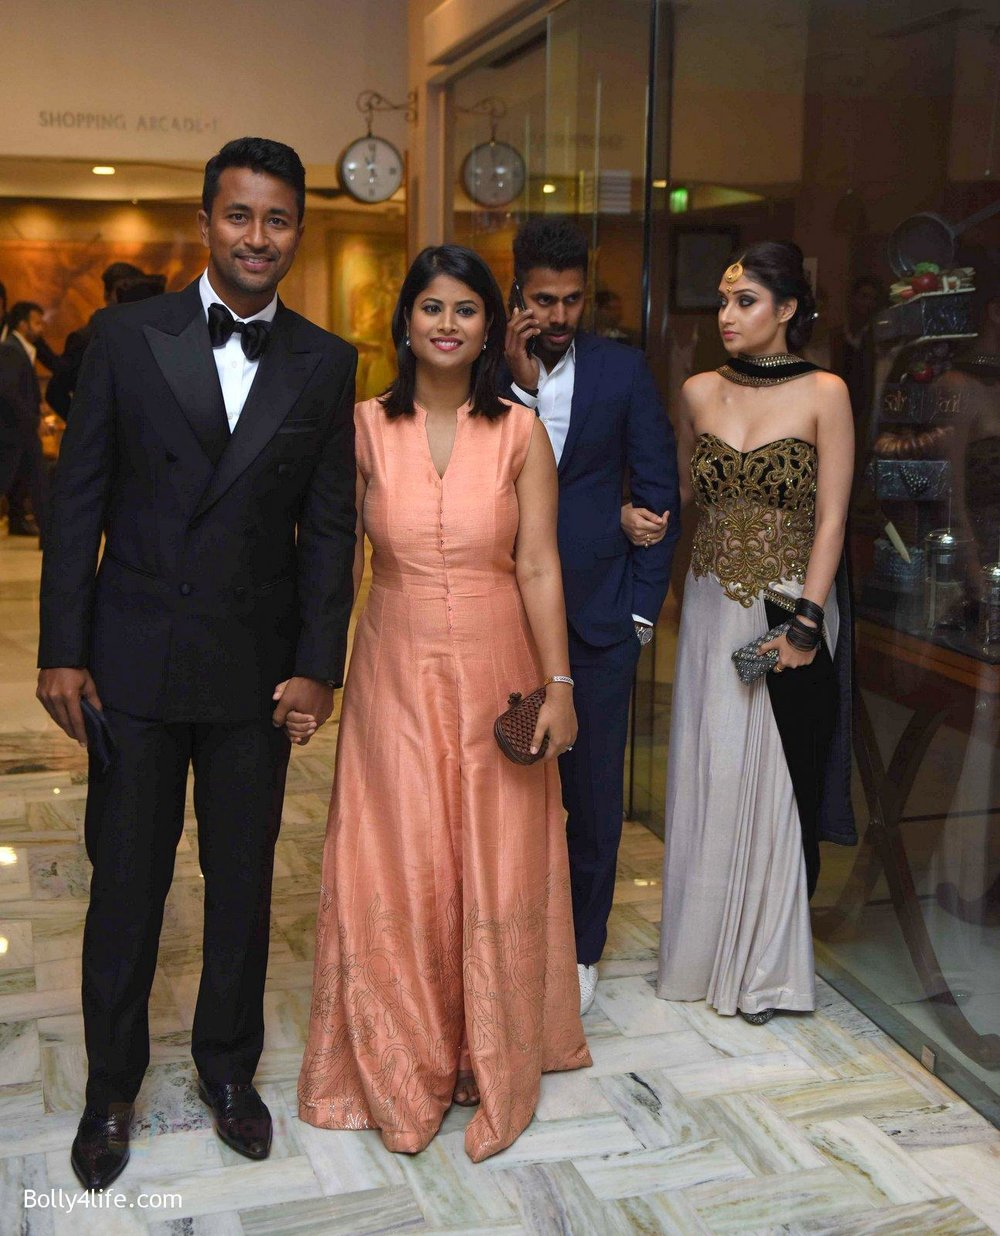 Ojha-Groupp-at-Yuvraj-Singh-and-Hazel-Keech-Wedding-Reception-on-7th-Dec-2016.jpg